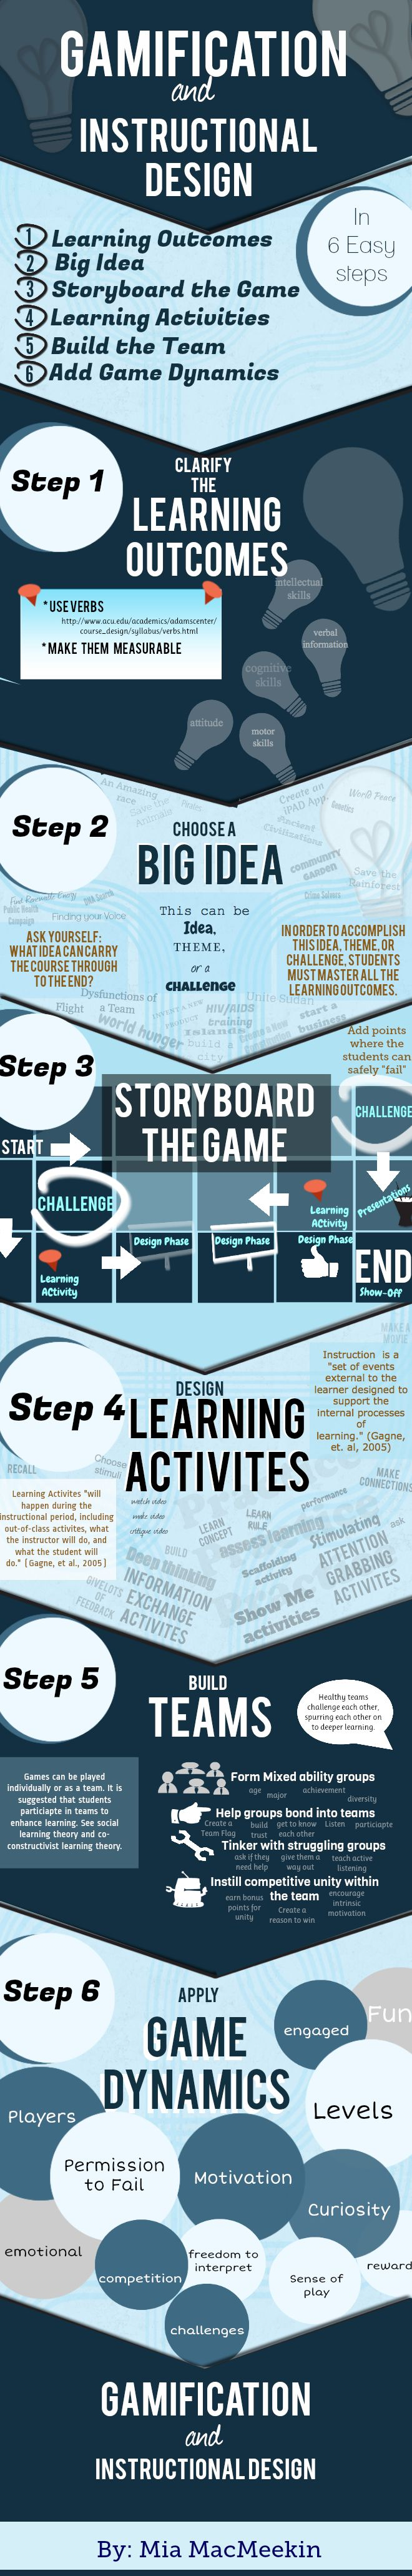 Infographic. Gamification and Instructional design